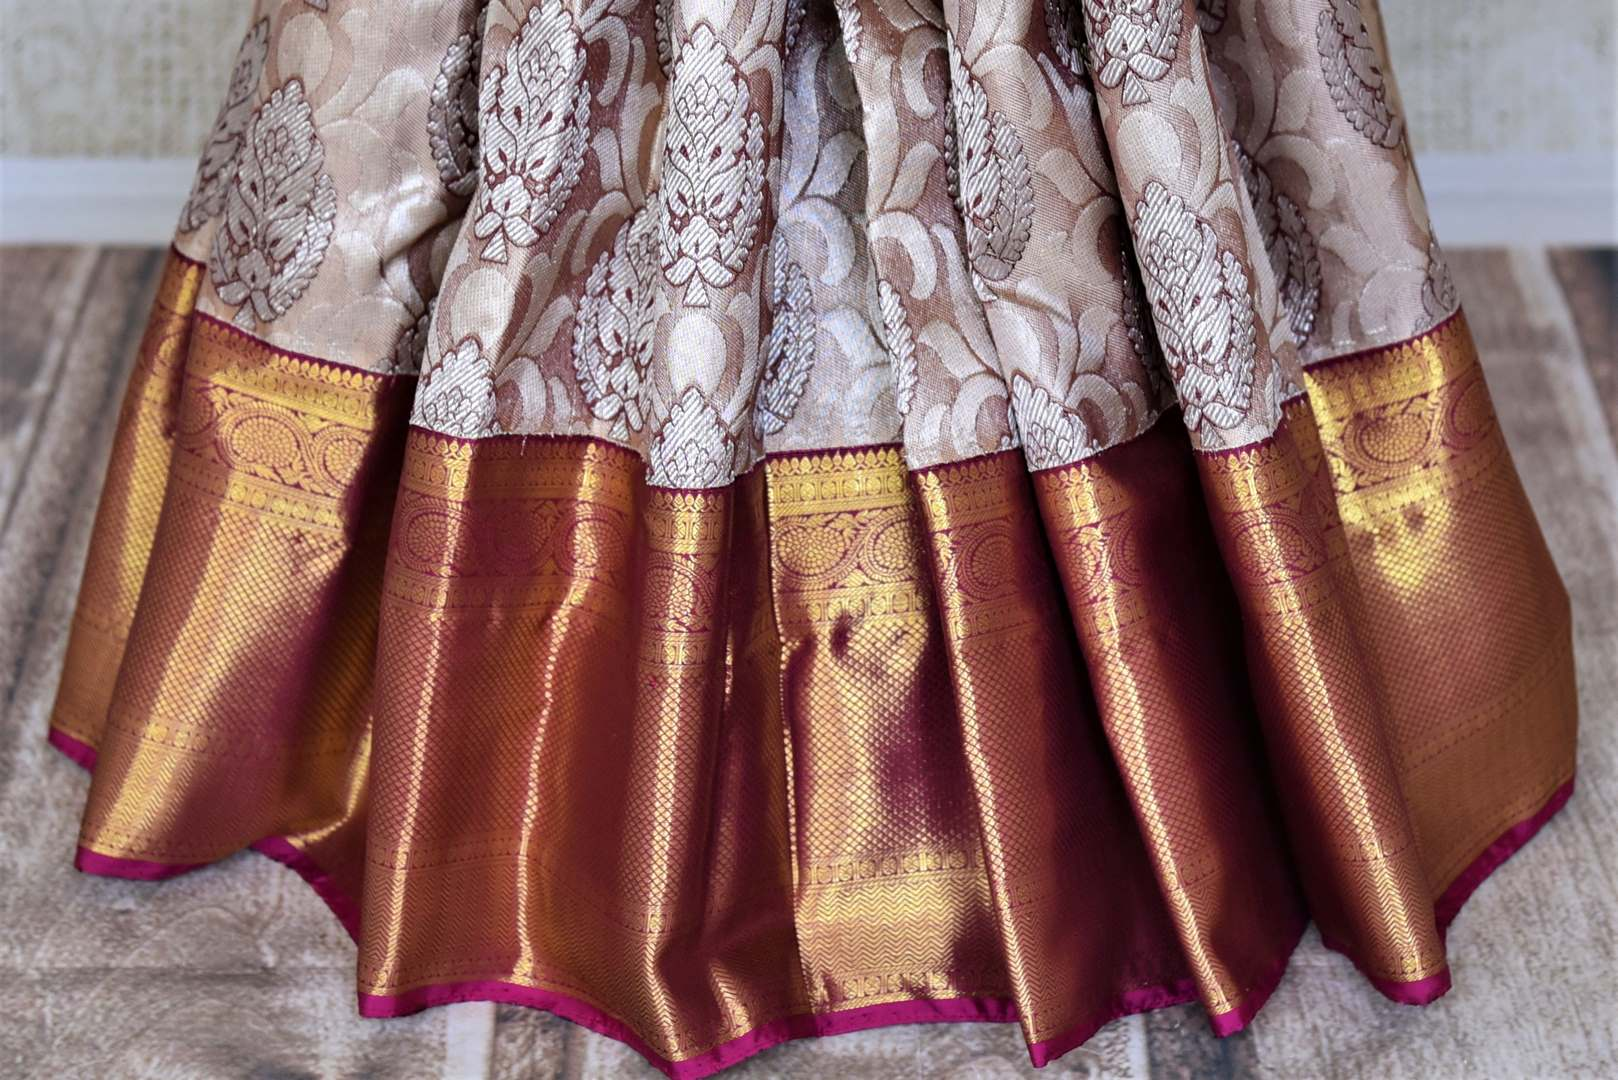 Buy beige Kanjeevaram sari online in USA with silver zari buta and magenta zari border. Get spoiled for choices with a myriad of Kanjivaram silk sarees, wedding sarees from Pure Elegance Indian fashion store in USA.-pleats